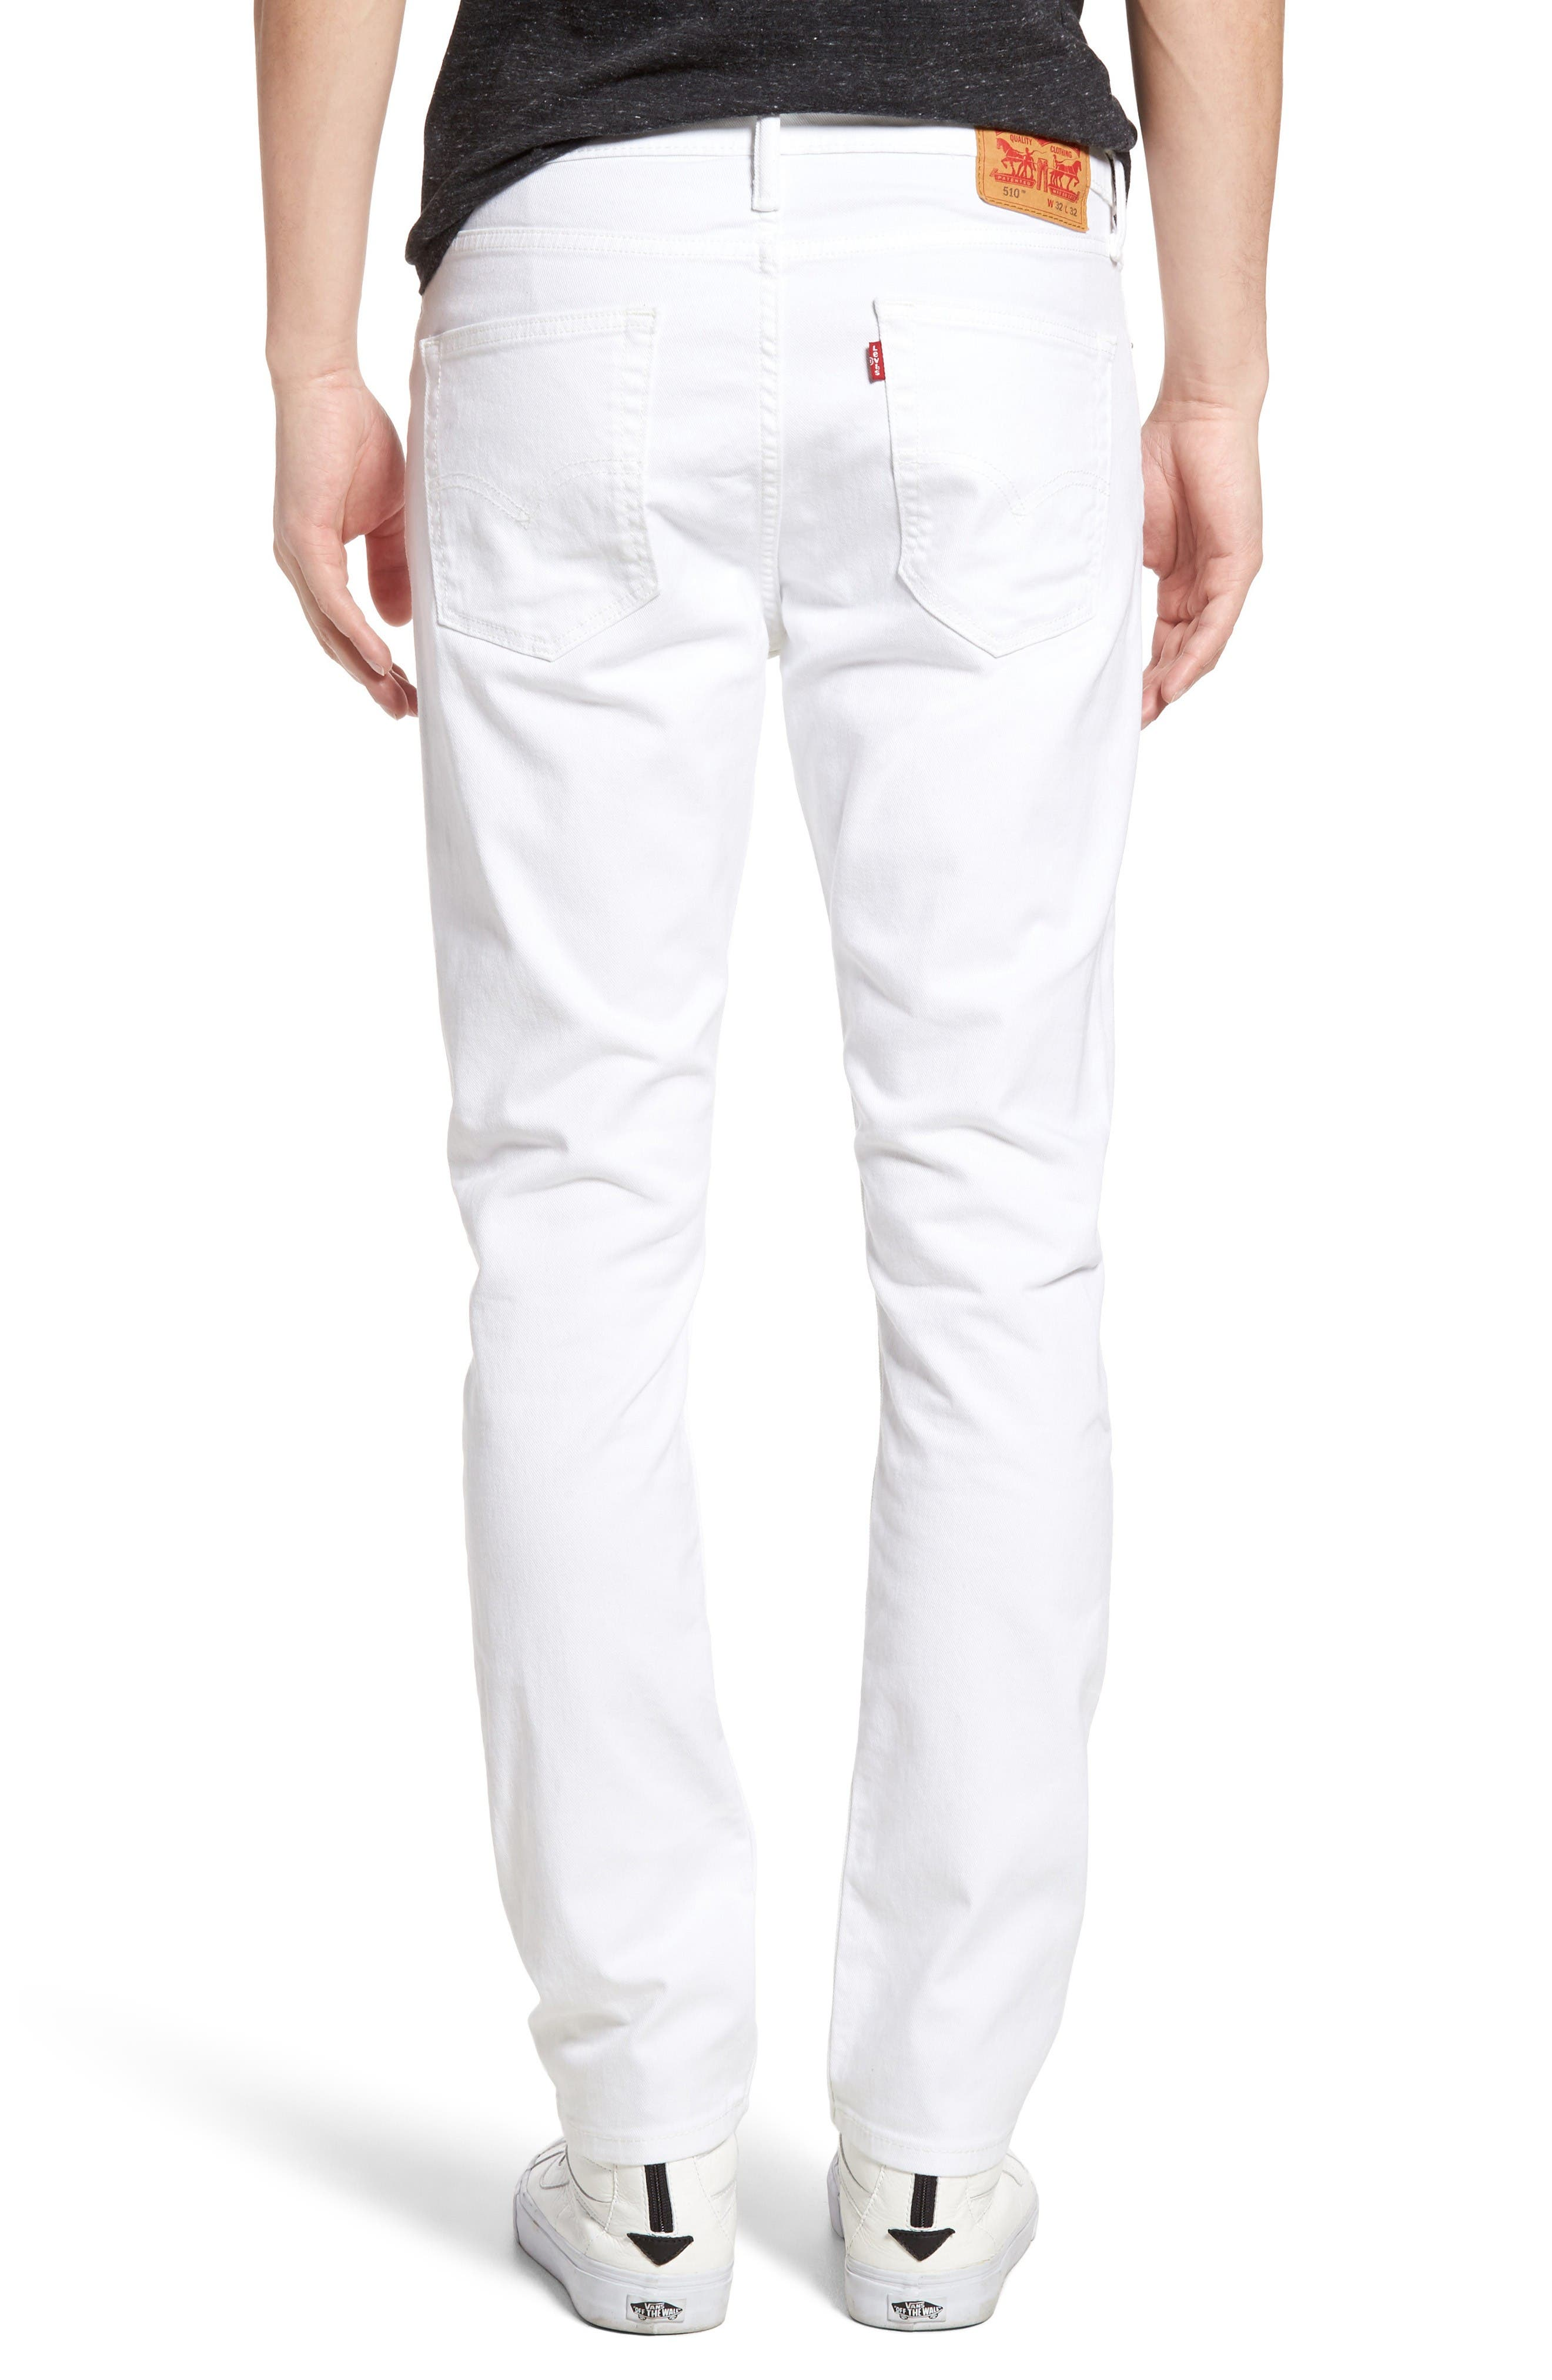 510<sup>®</sup> Skinny Fit Jeans,                             Alternate thumbnail 2, color,                             White Bull Denim